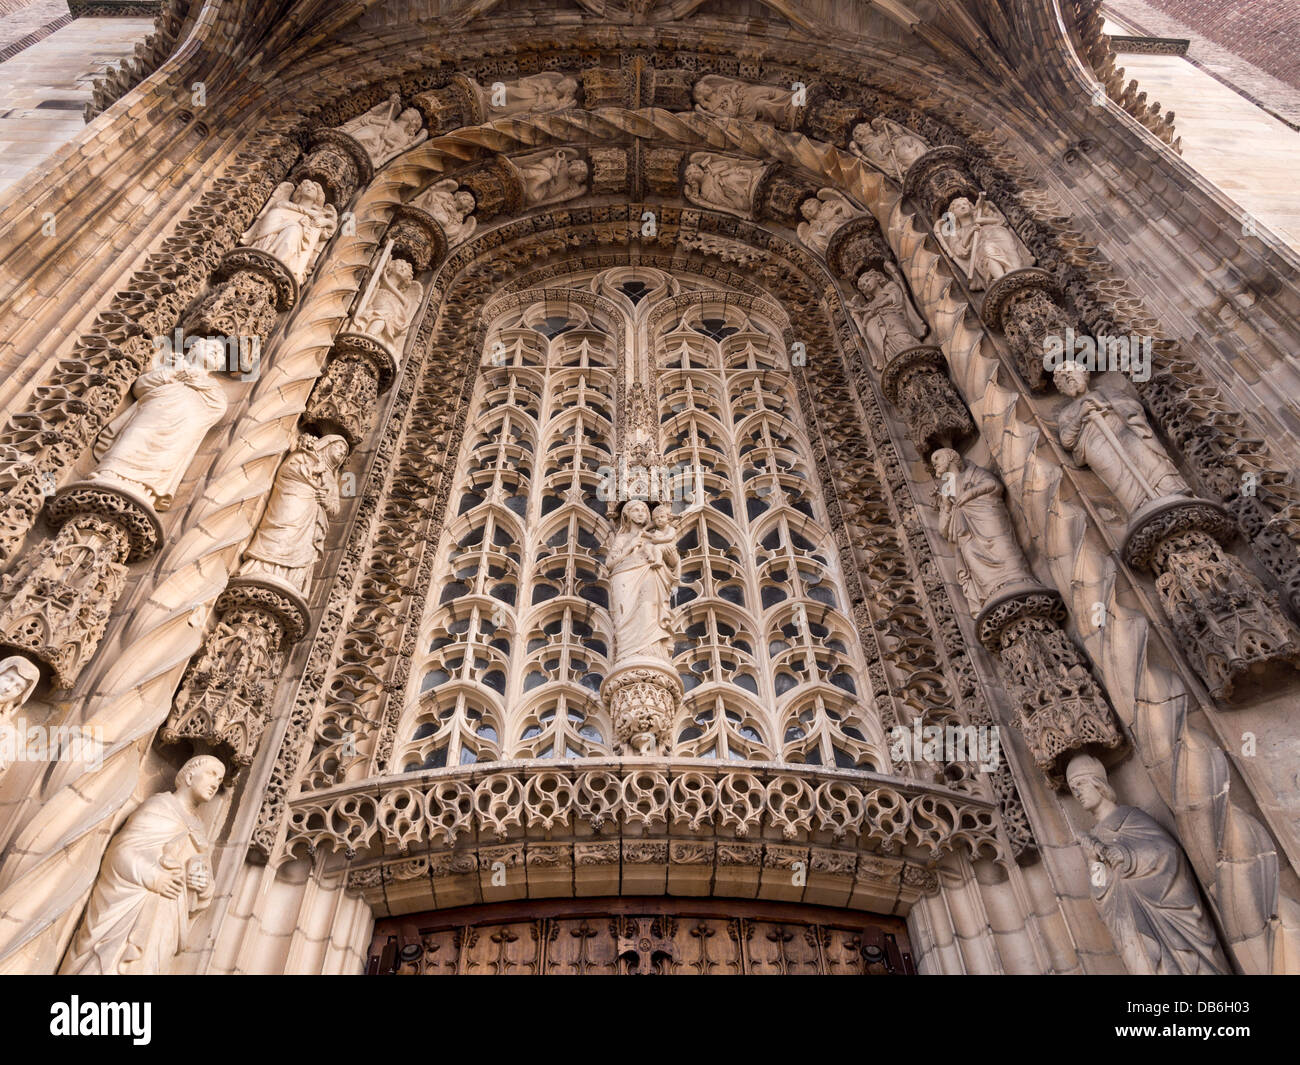 Ornate Carved Stone tympanum . The sculpture above the entrance to the Cathedral is intricately carved stone. - Stock Image